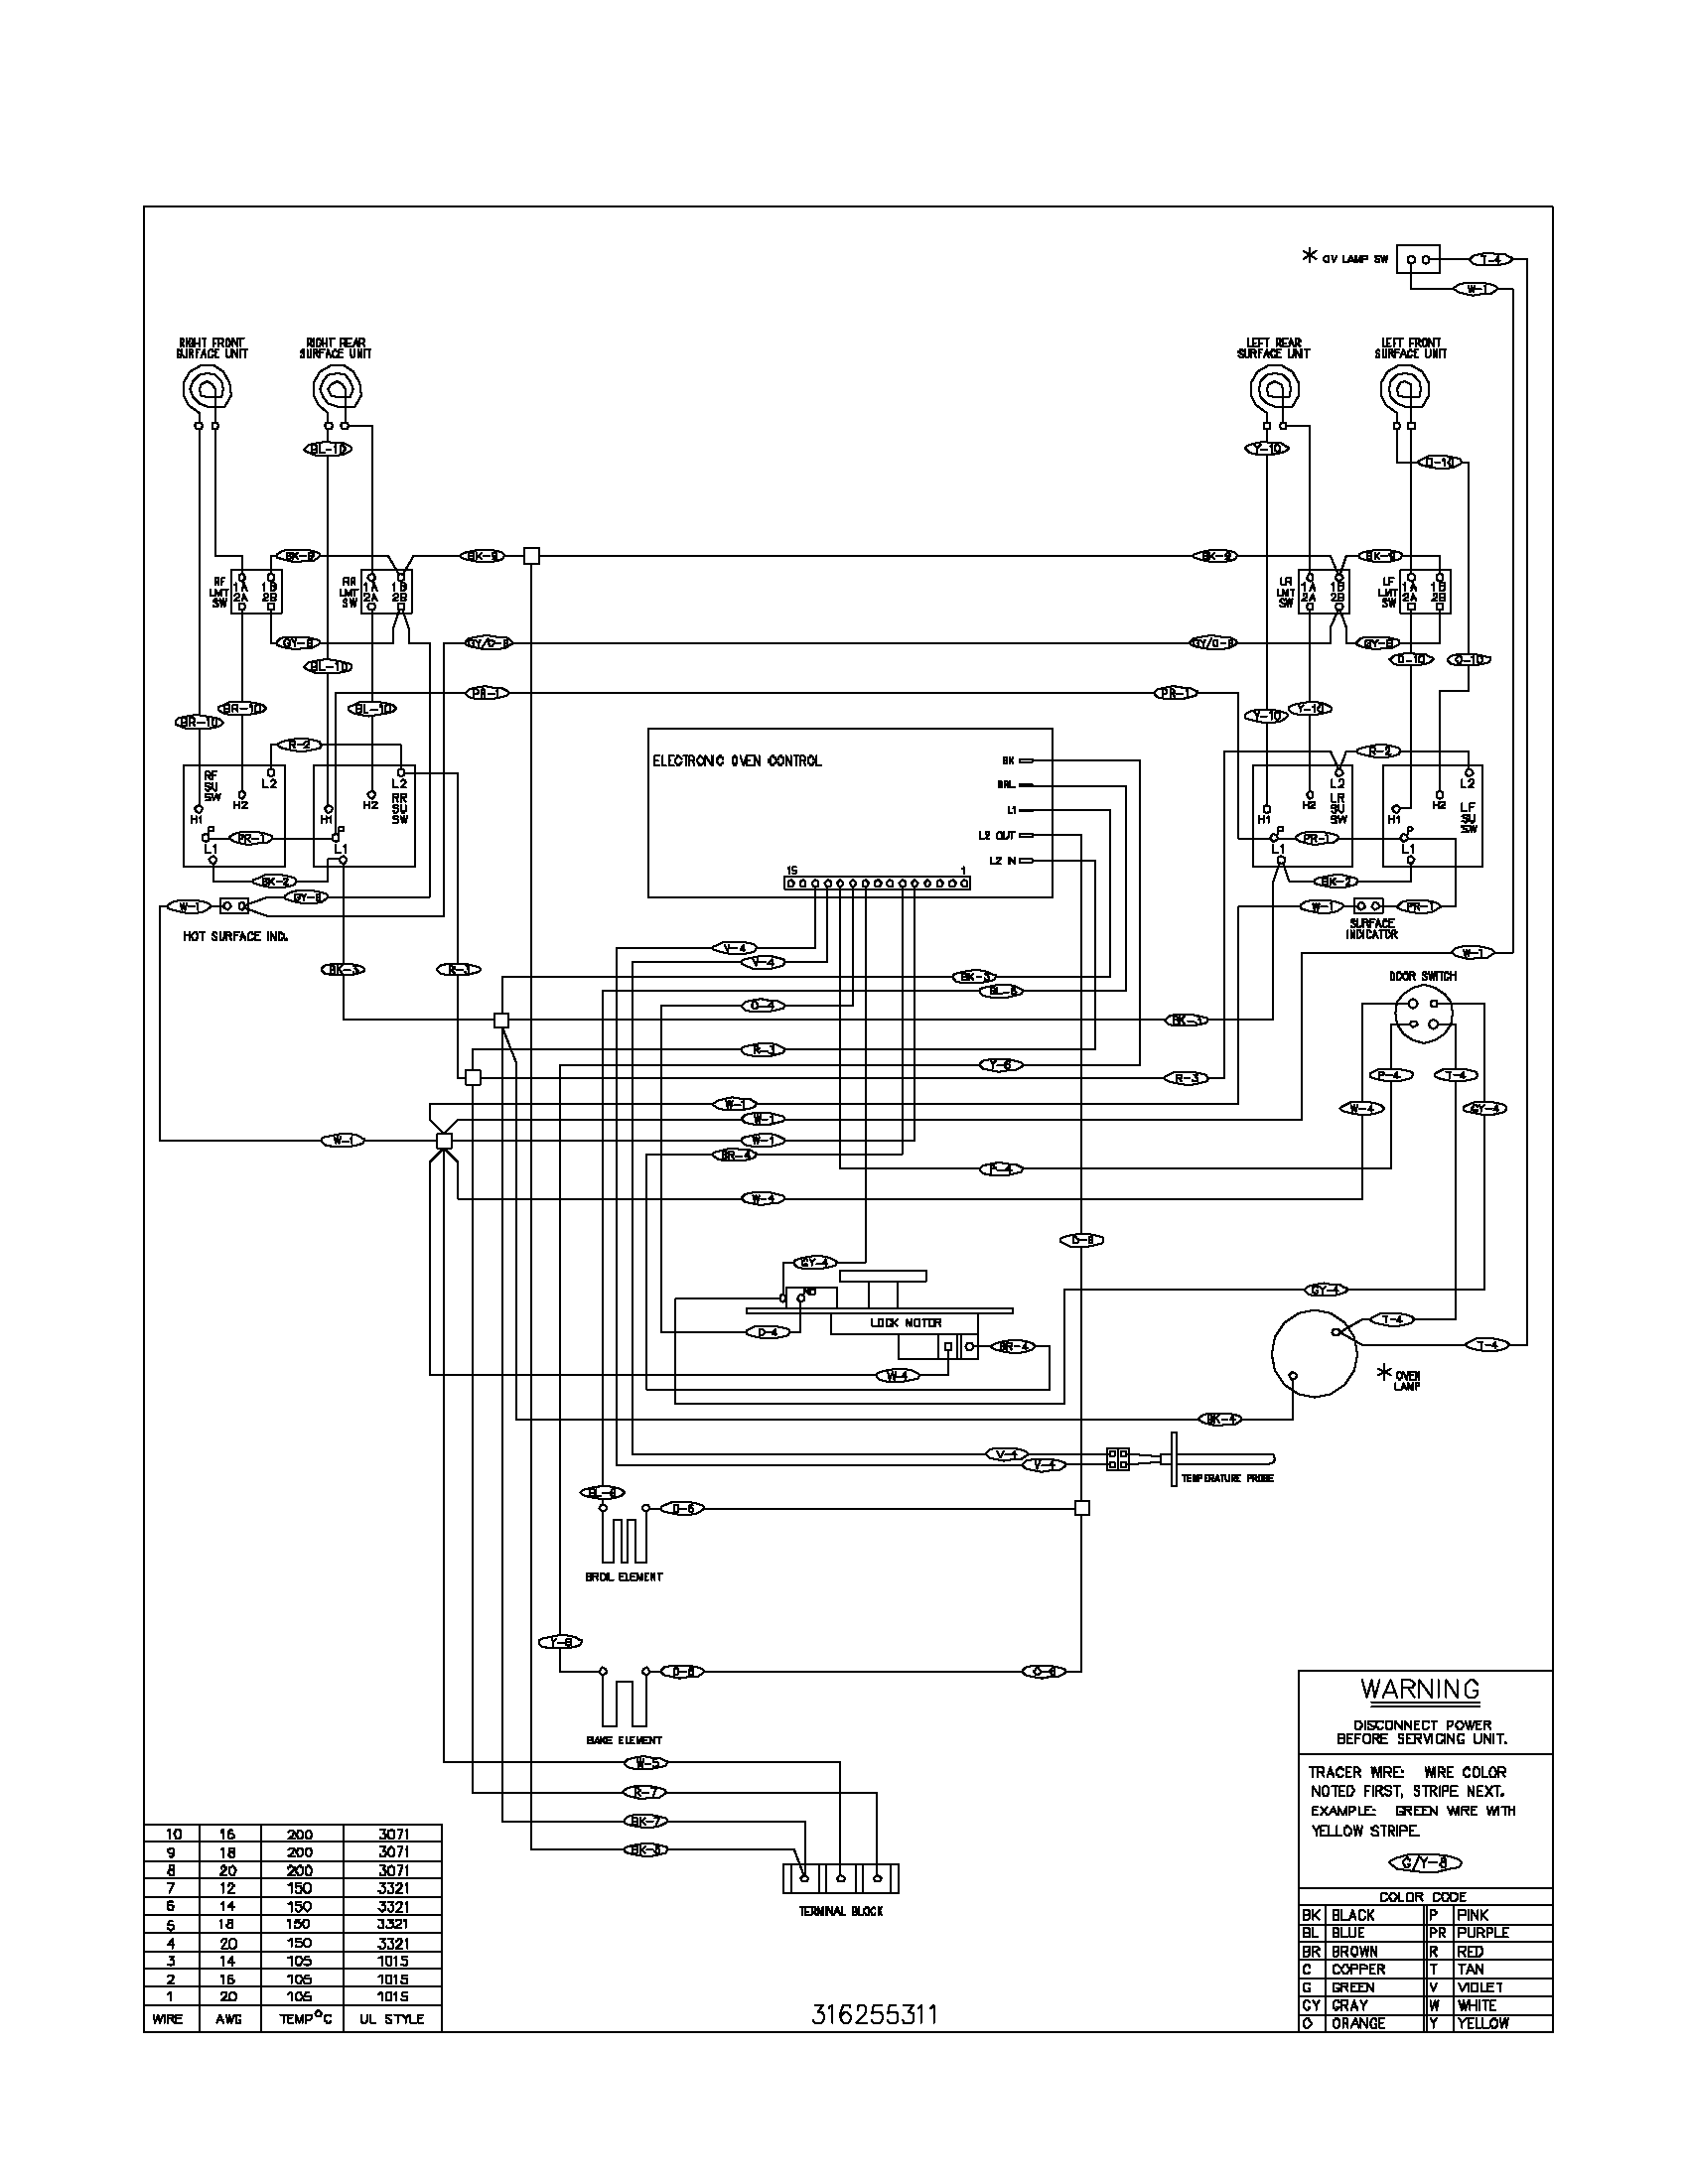 Kenmore 110985751 Washer Dryer Timer Stove Clocks And Liance. 110 96274100 Wiring Diagram